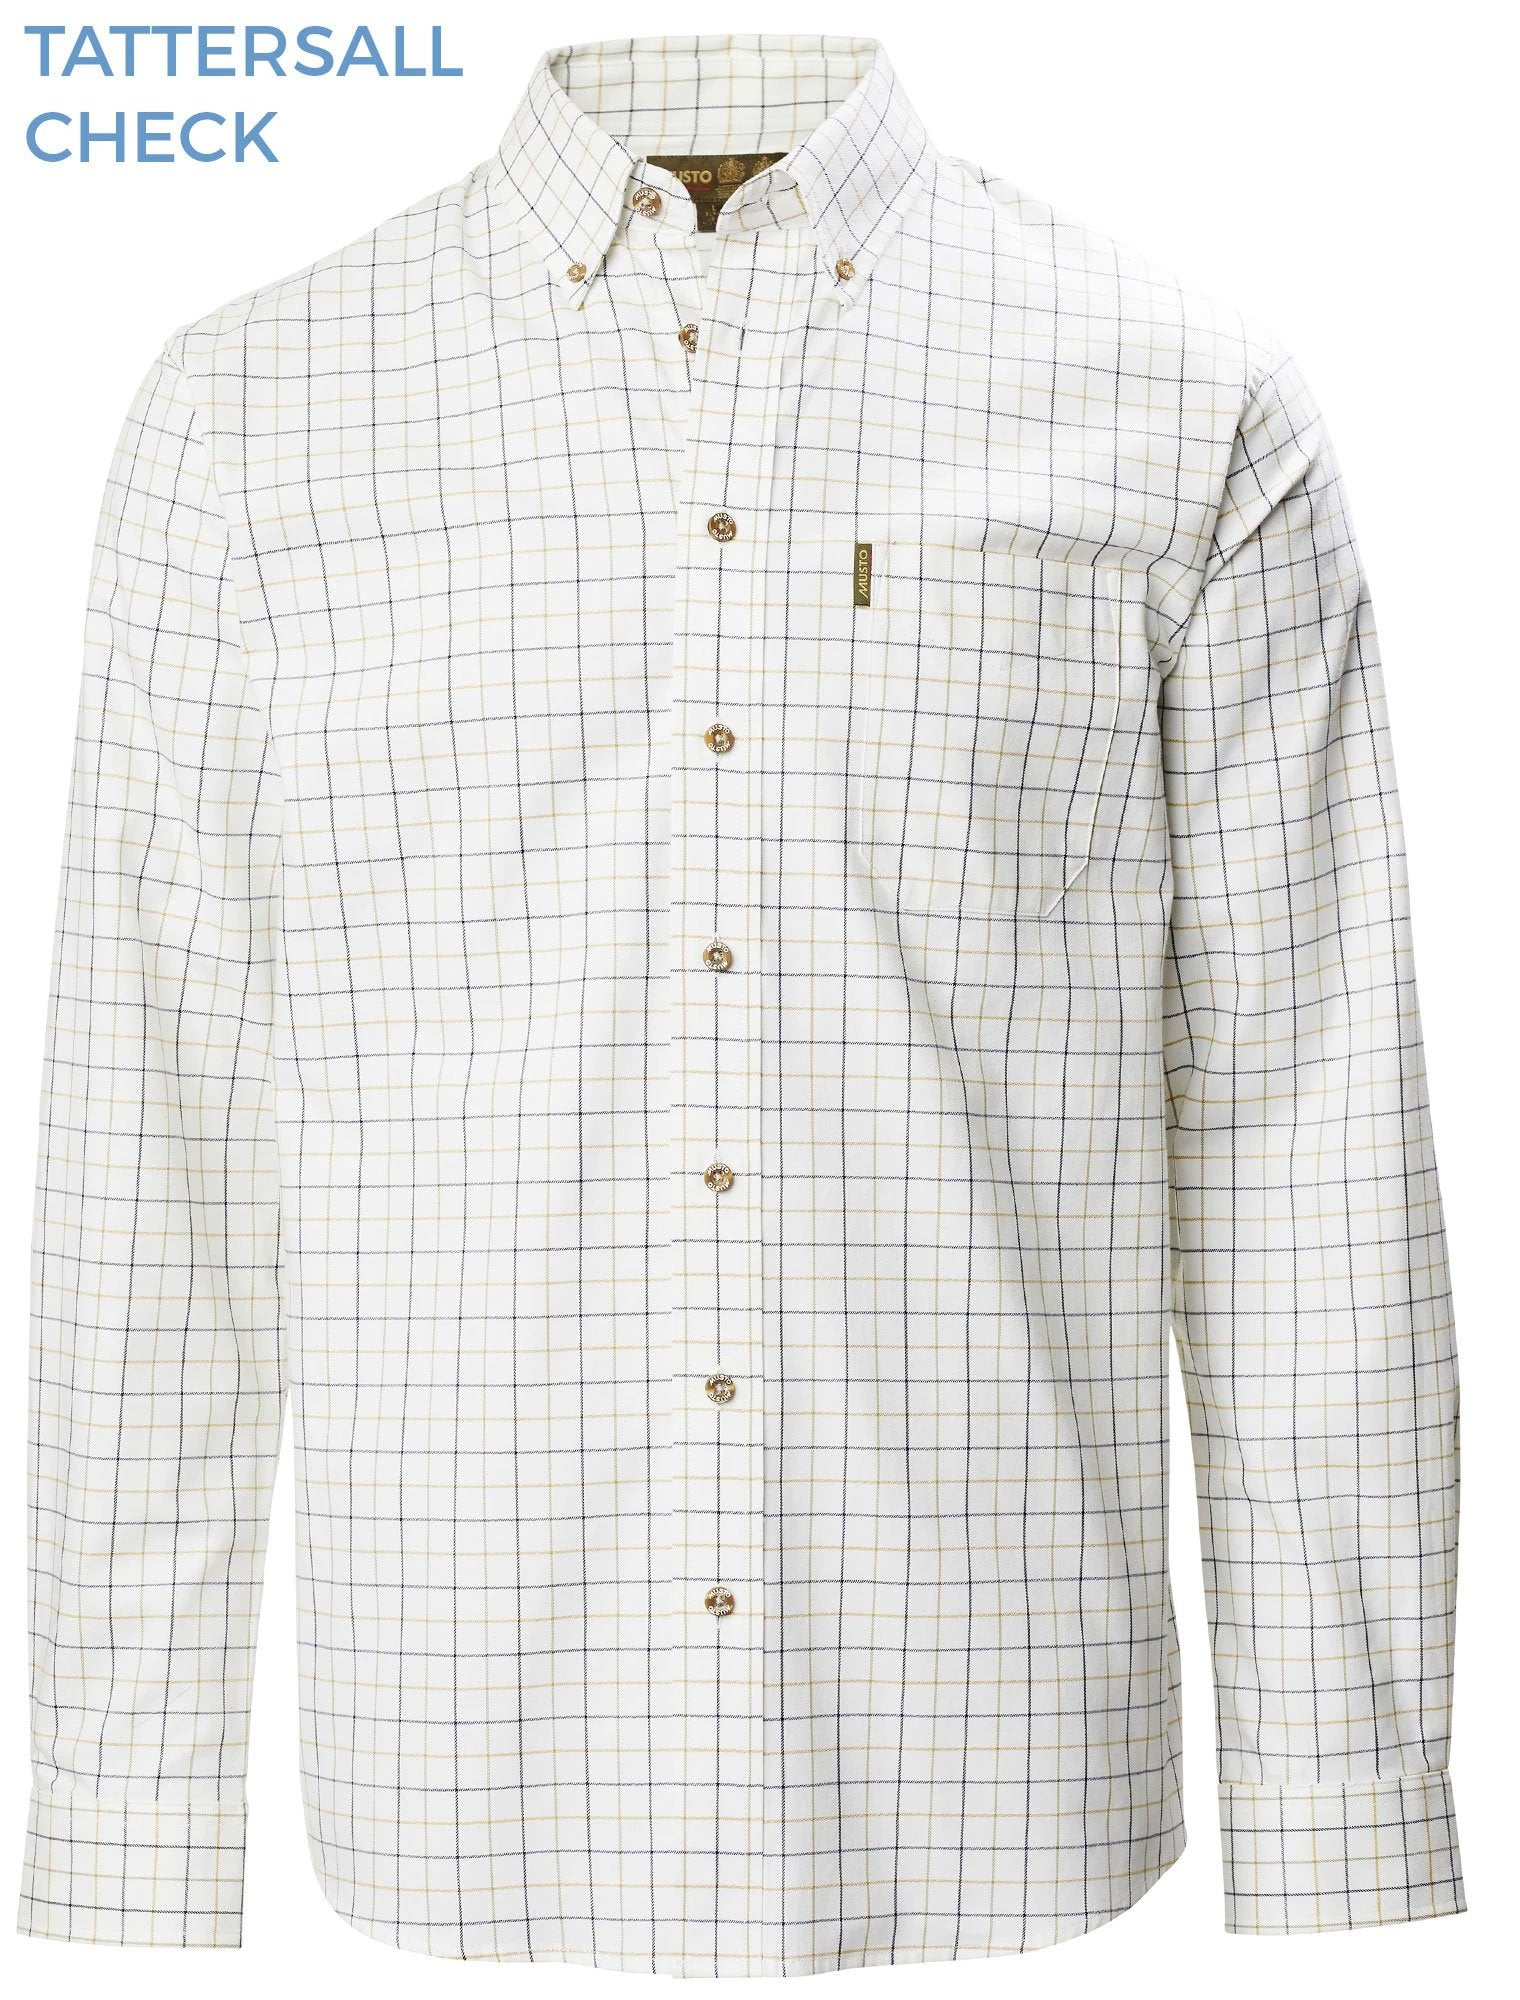 Musto Classic Button Down Shirt Tattersall Check